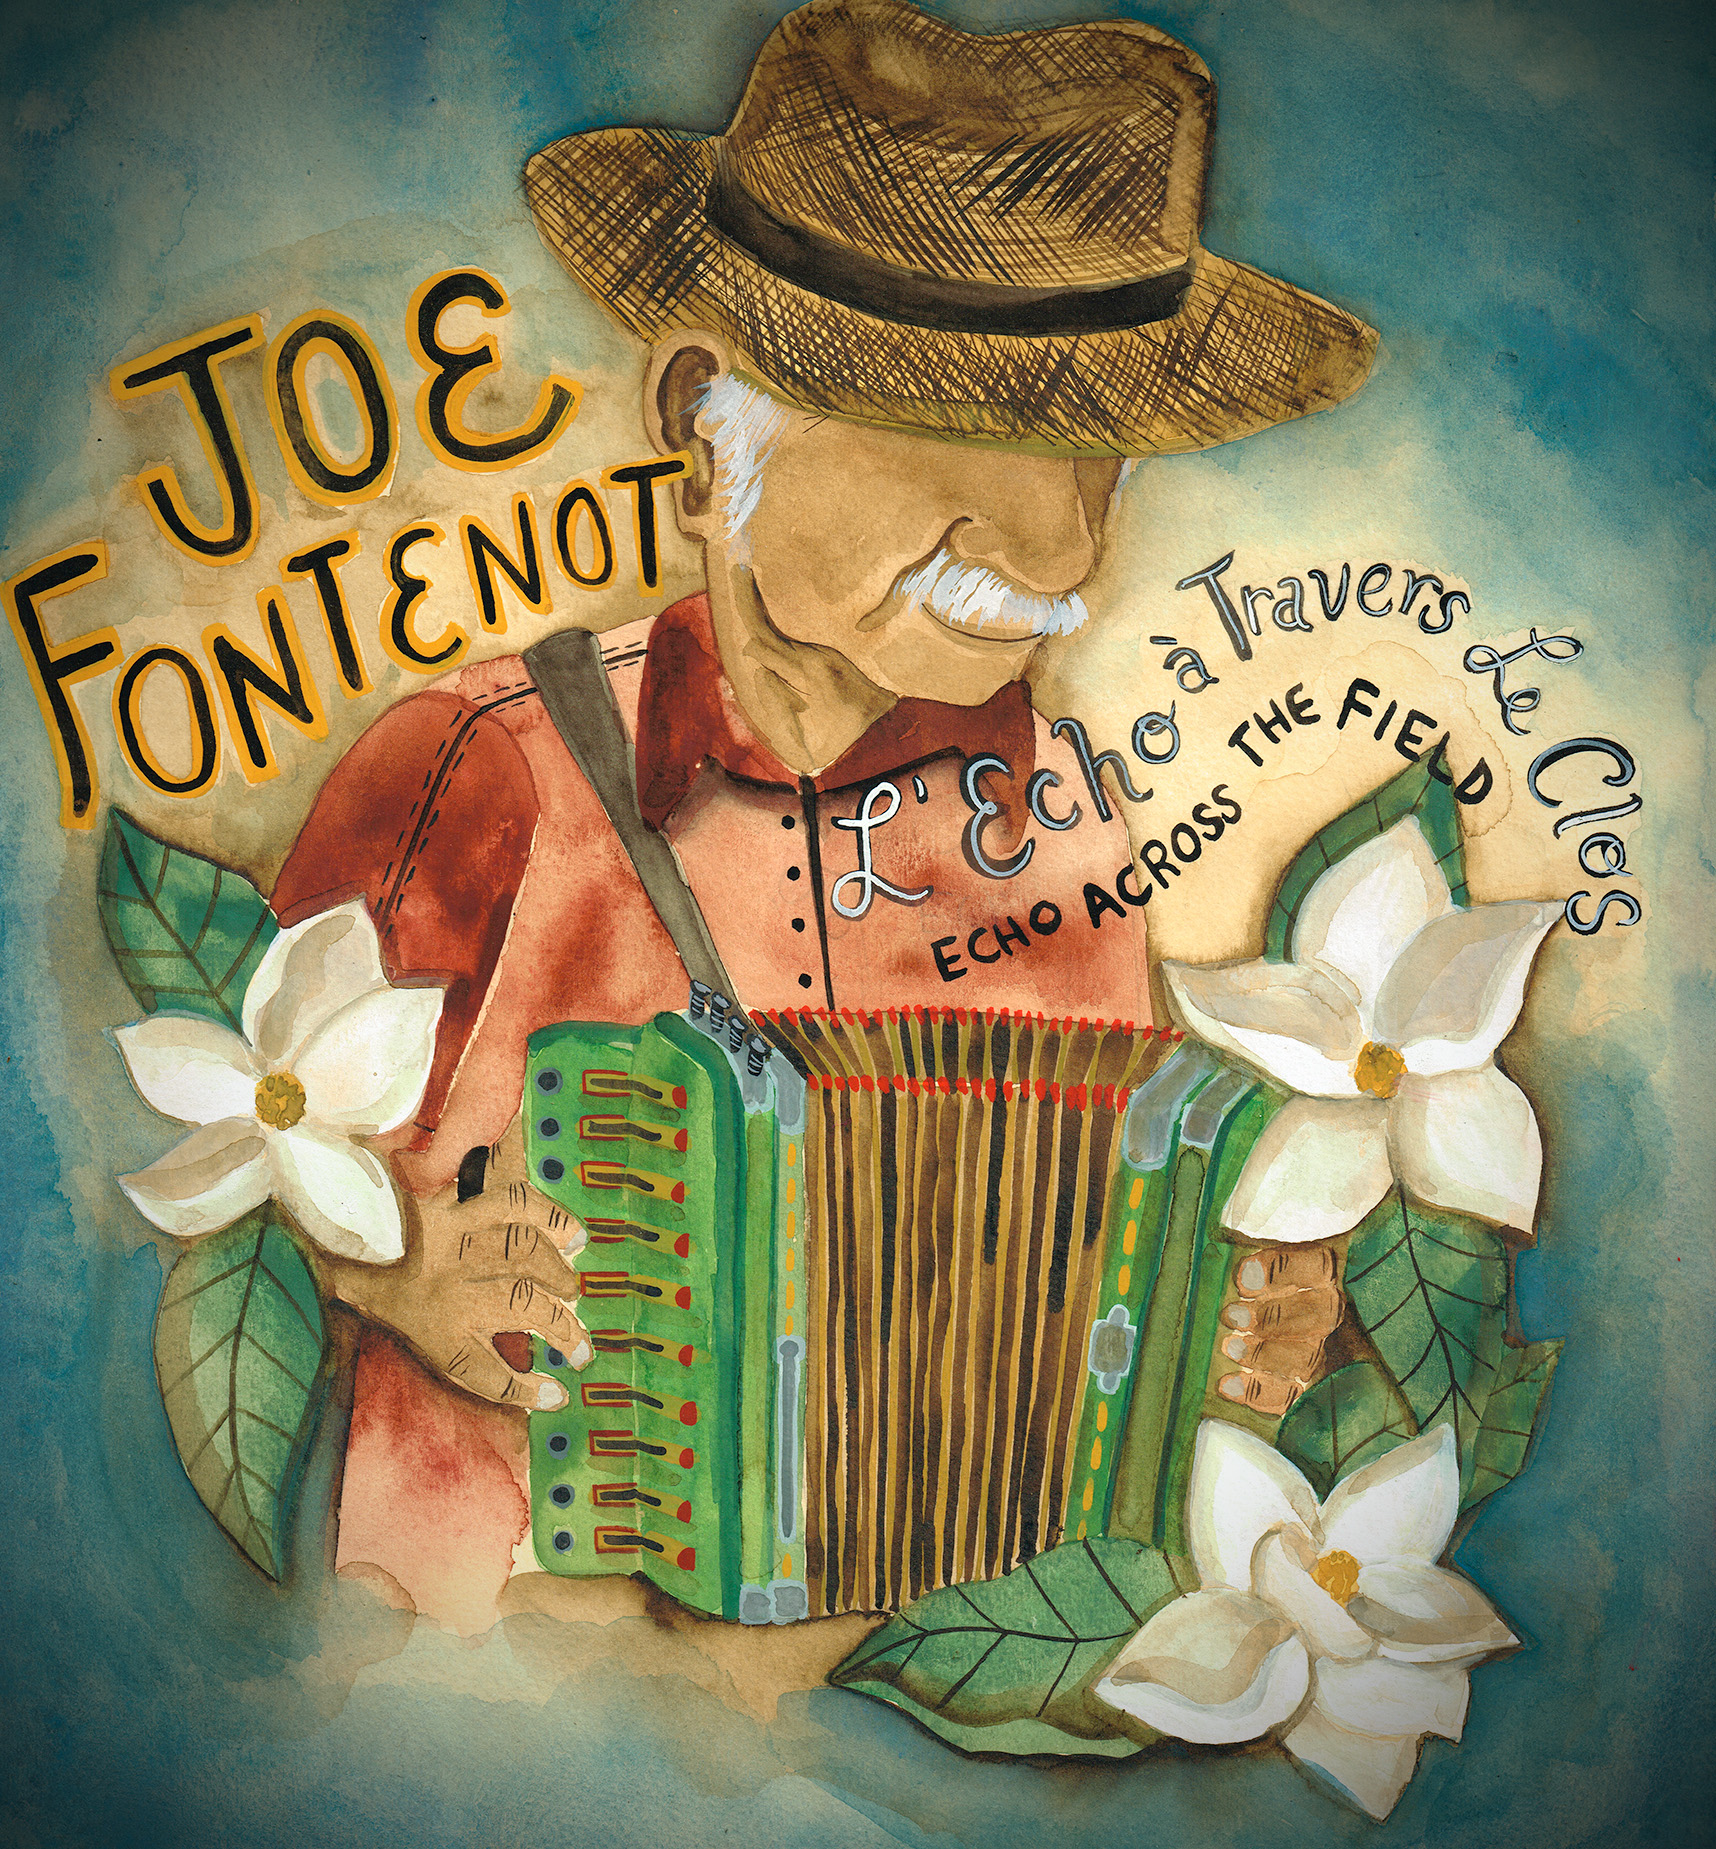 Joe Fontenot cover for web